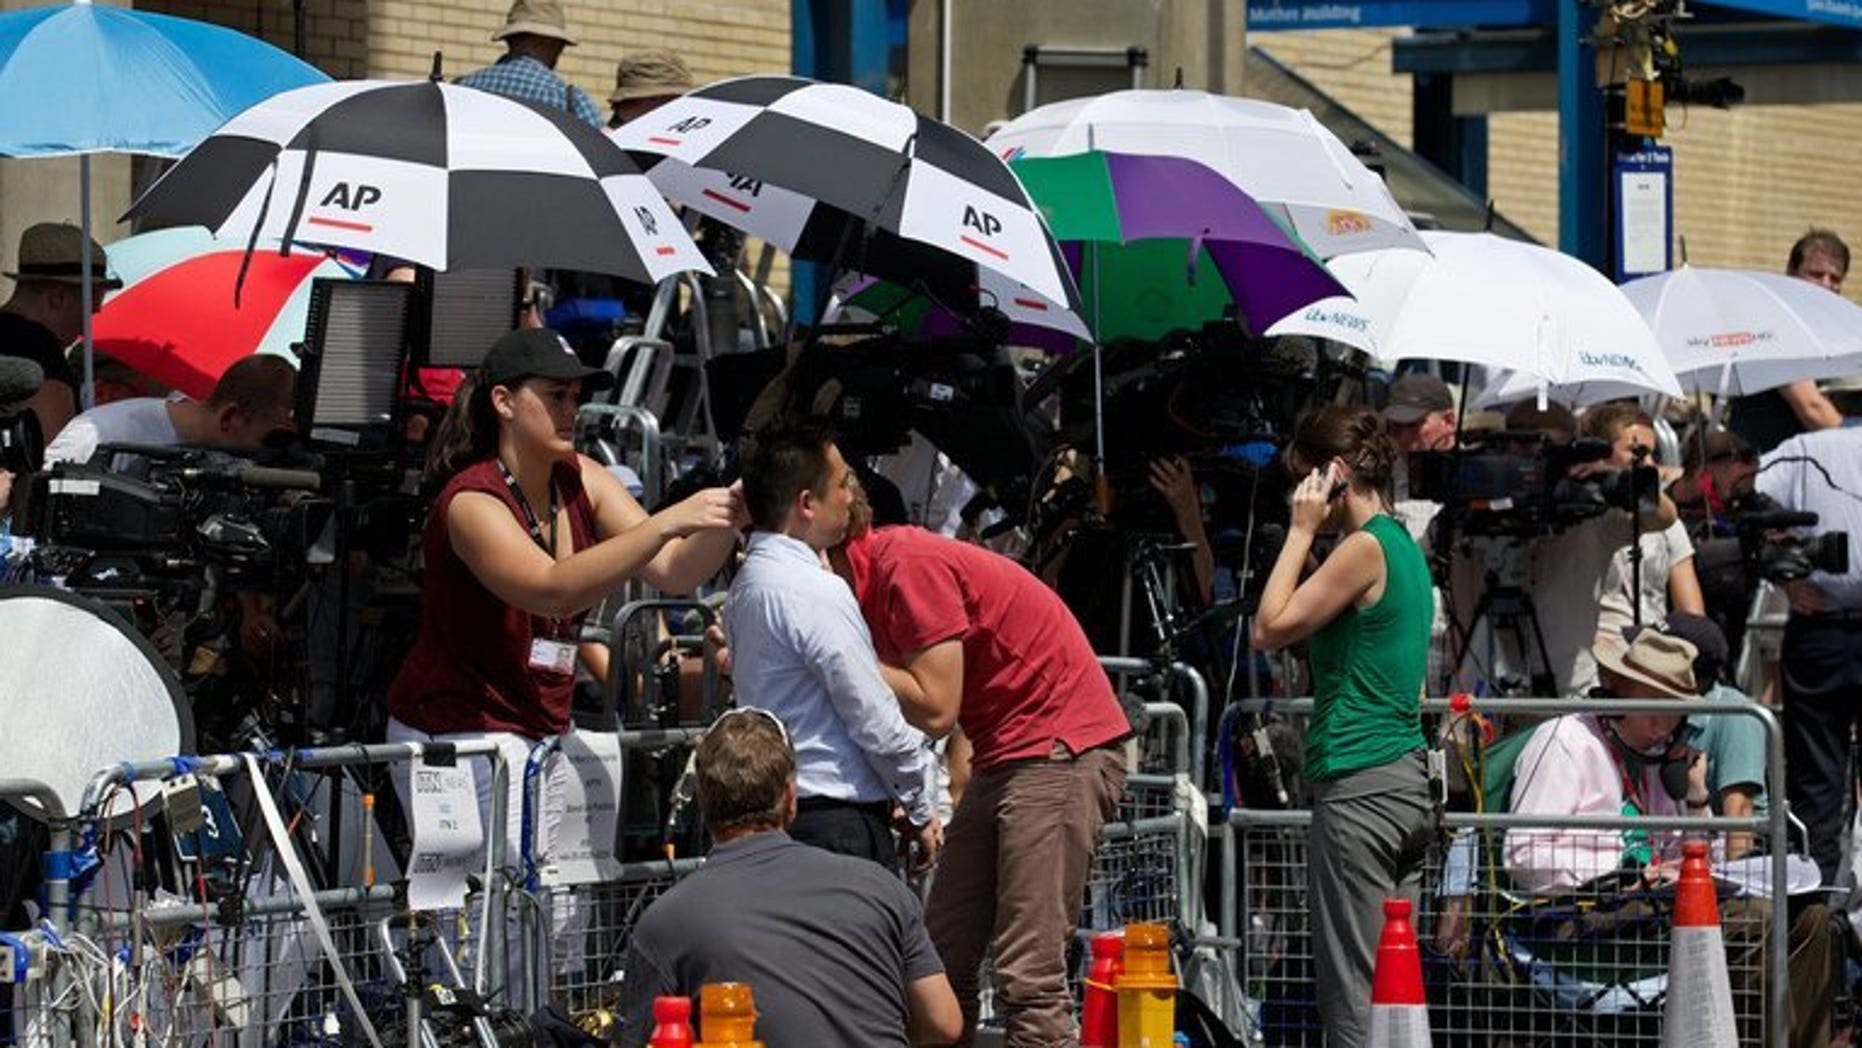 """Media gather outside St Mary's hospital, on July 22, 2013. The Sun on Tuesday changed its name to """"The Son"""" to honour the arrival of a baby boy for Prince William and Kate"""